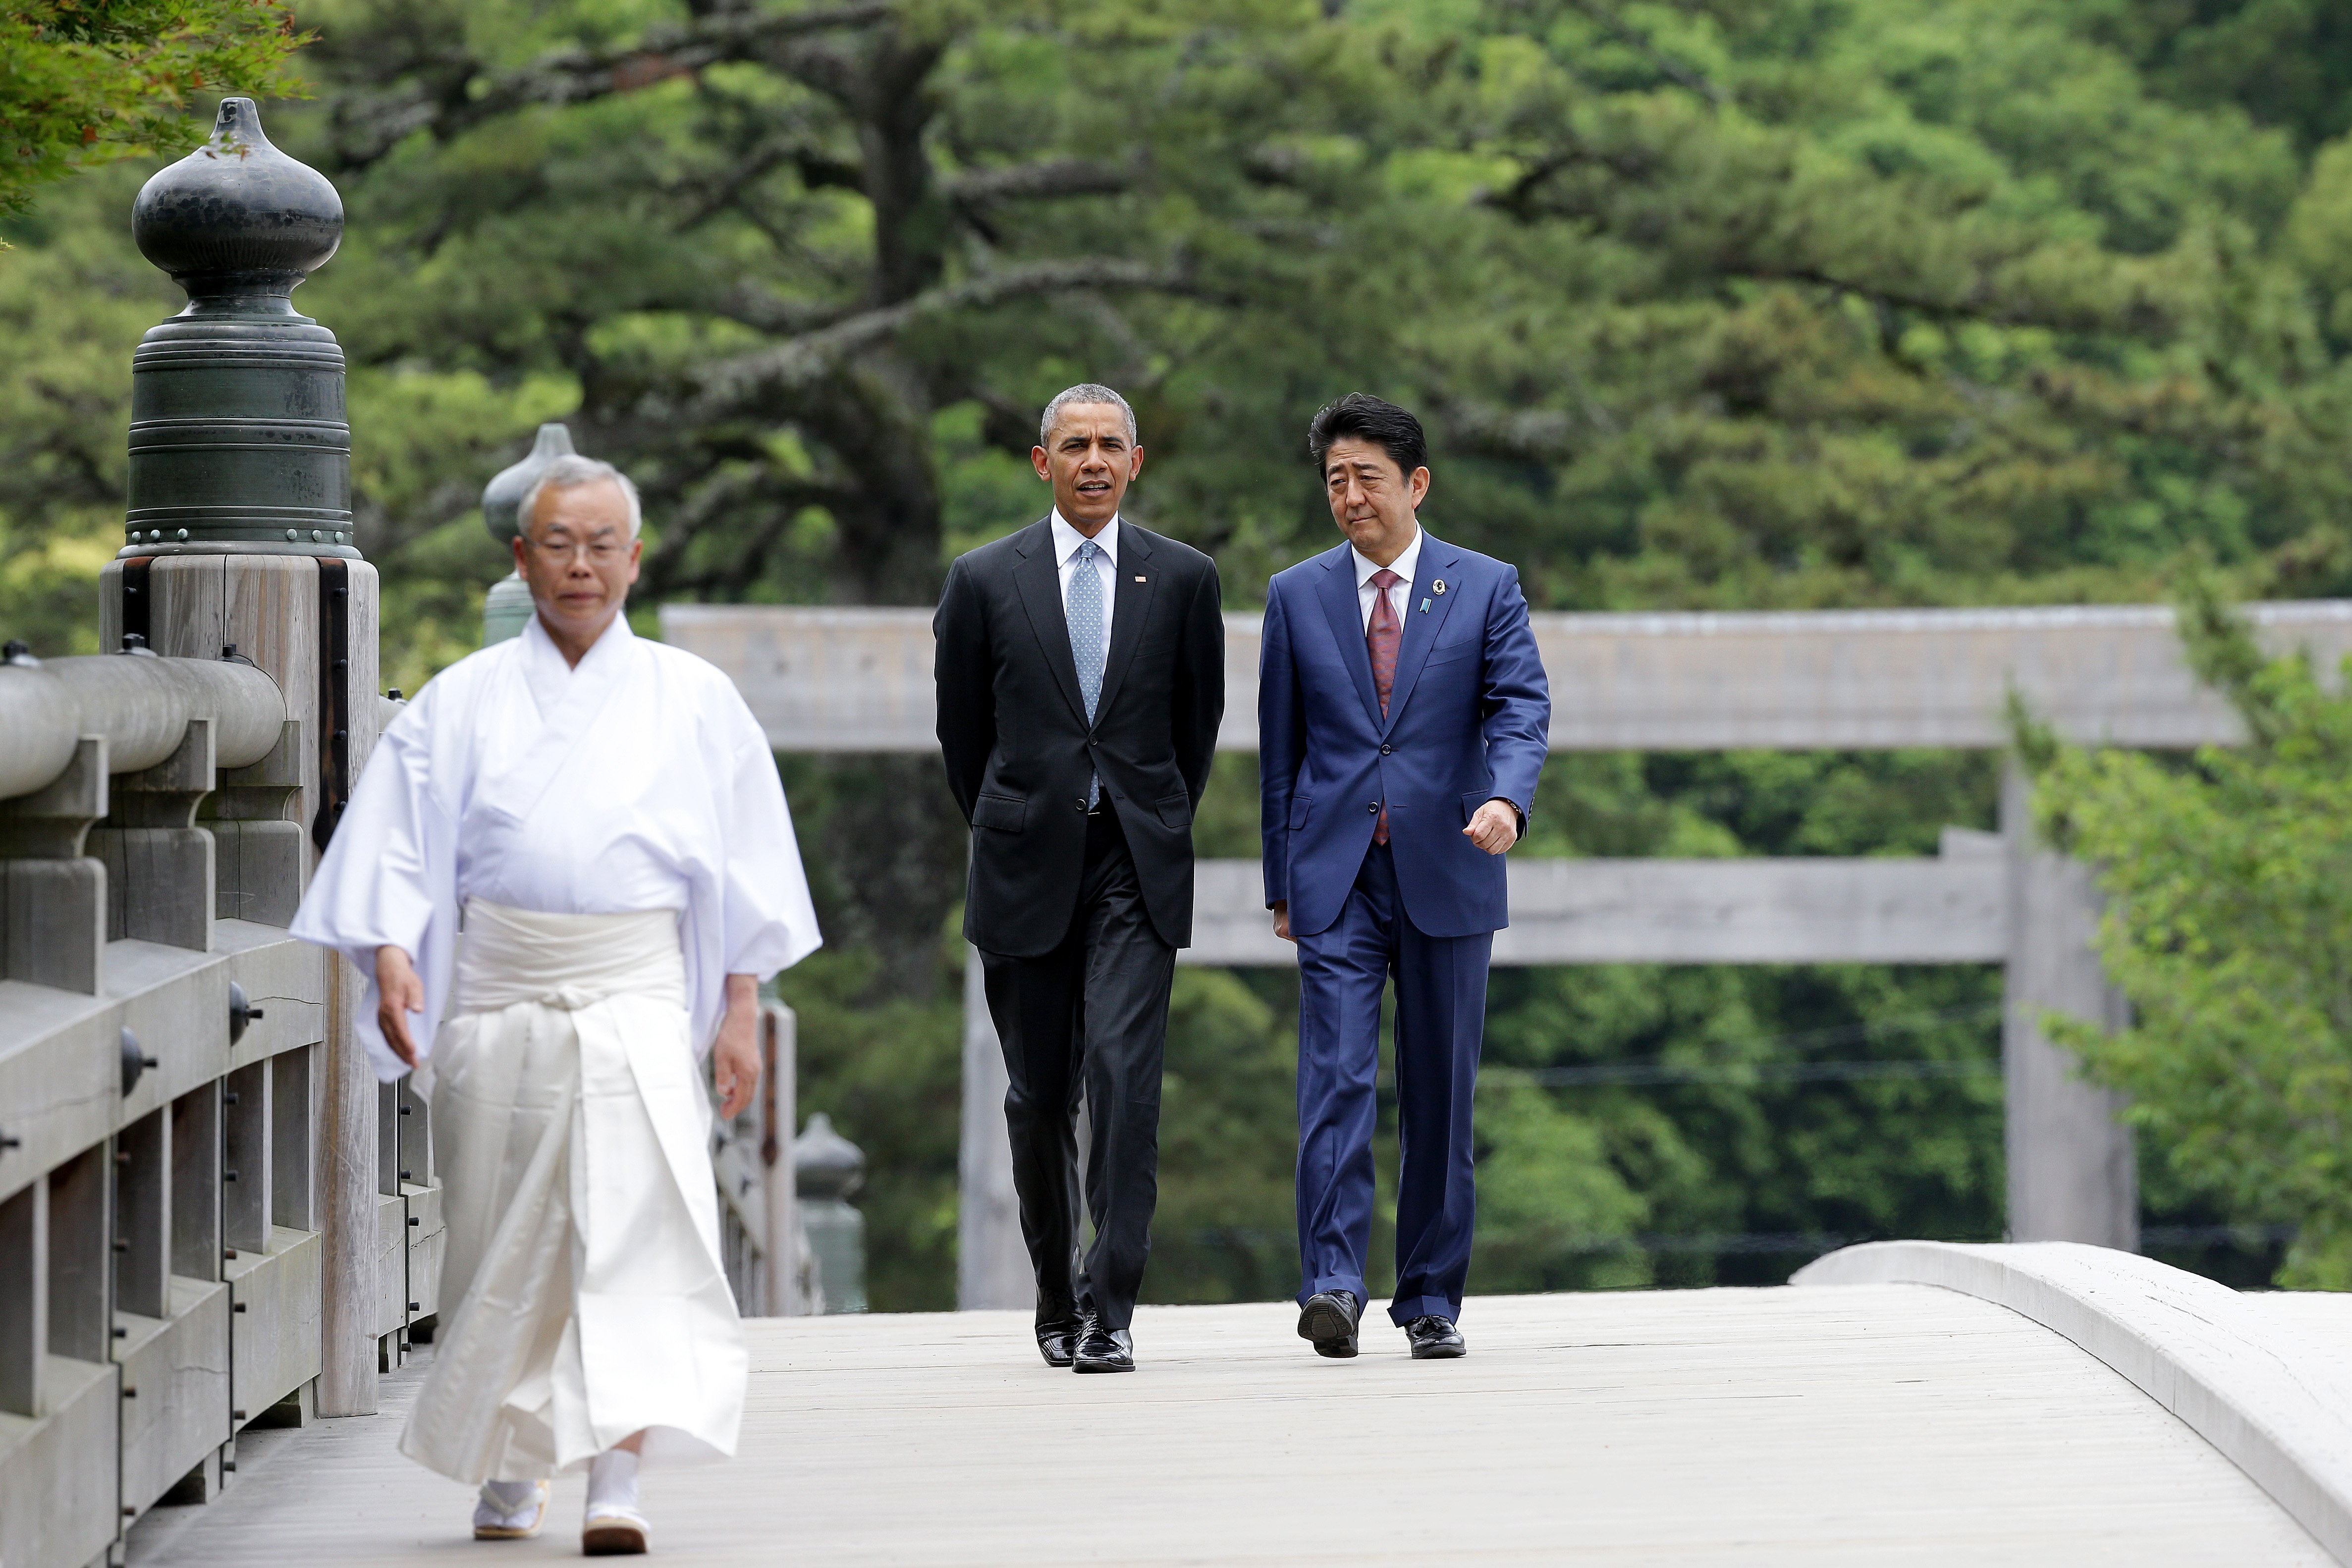 U.S. President Barack Obama walks with Japanese Prime Minister Shinzo Abe on the Ujibashi bridge as they visit at the Ise-Jingu Shrine on May 26, 2016 in Ise, Japan.